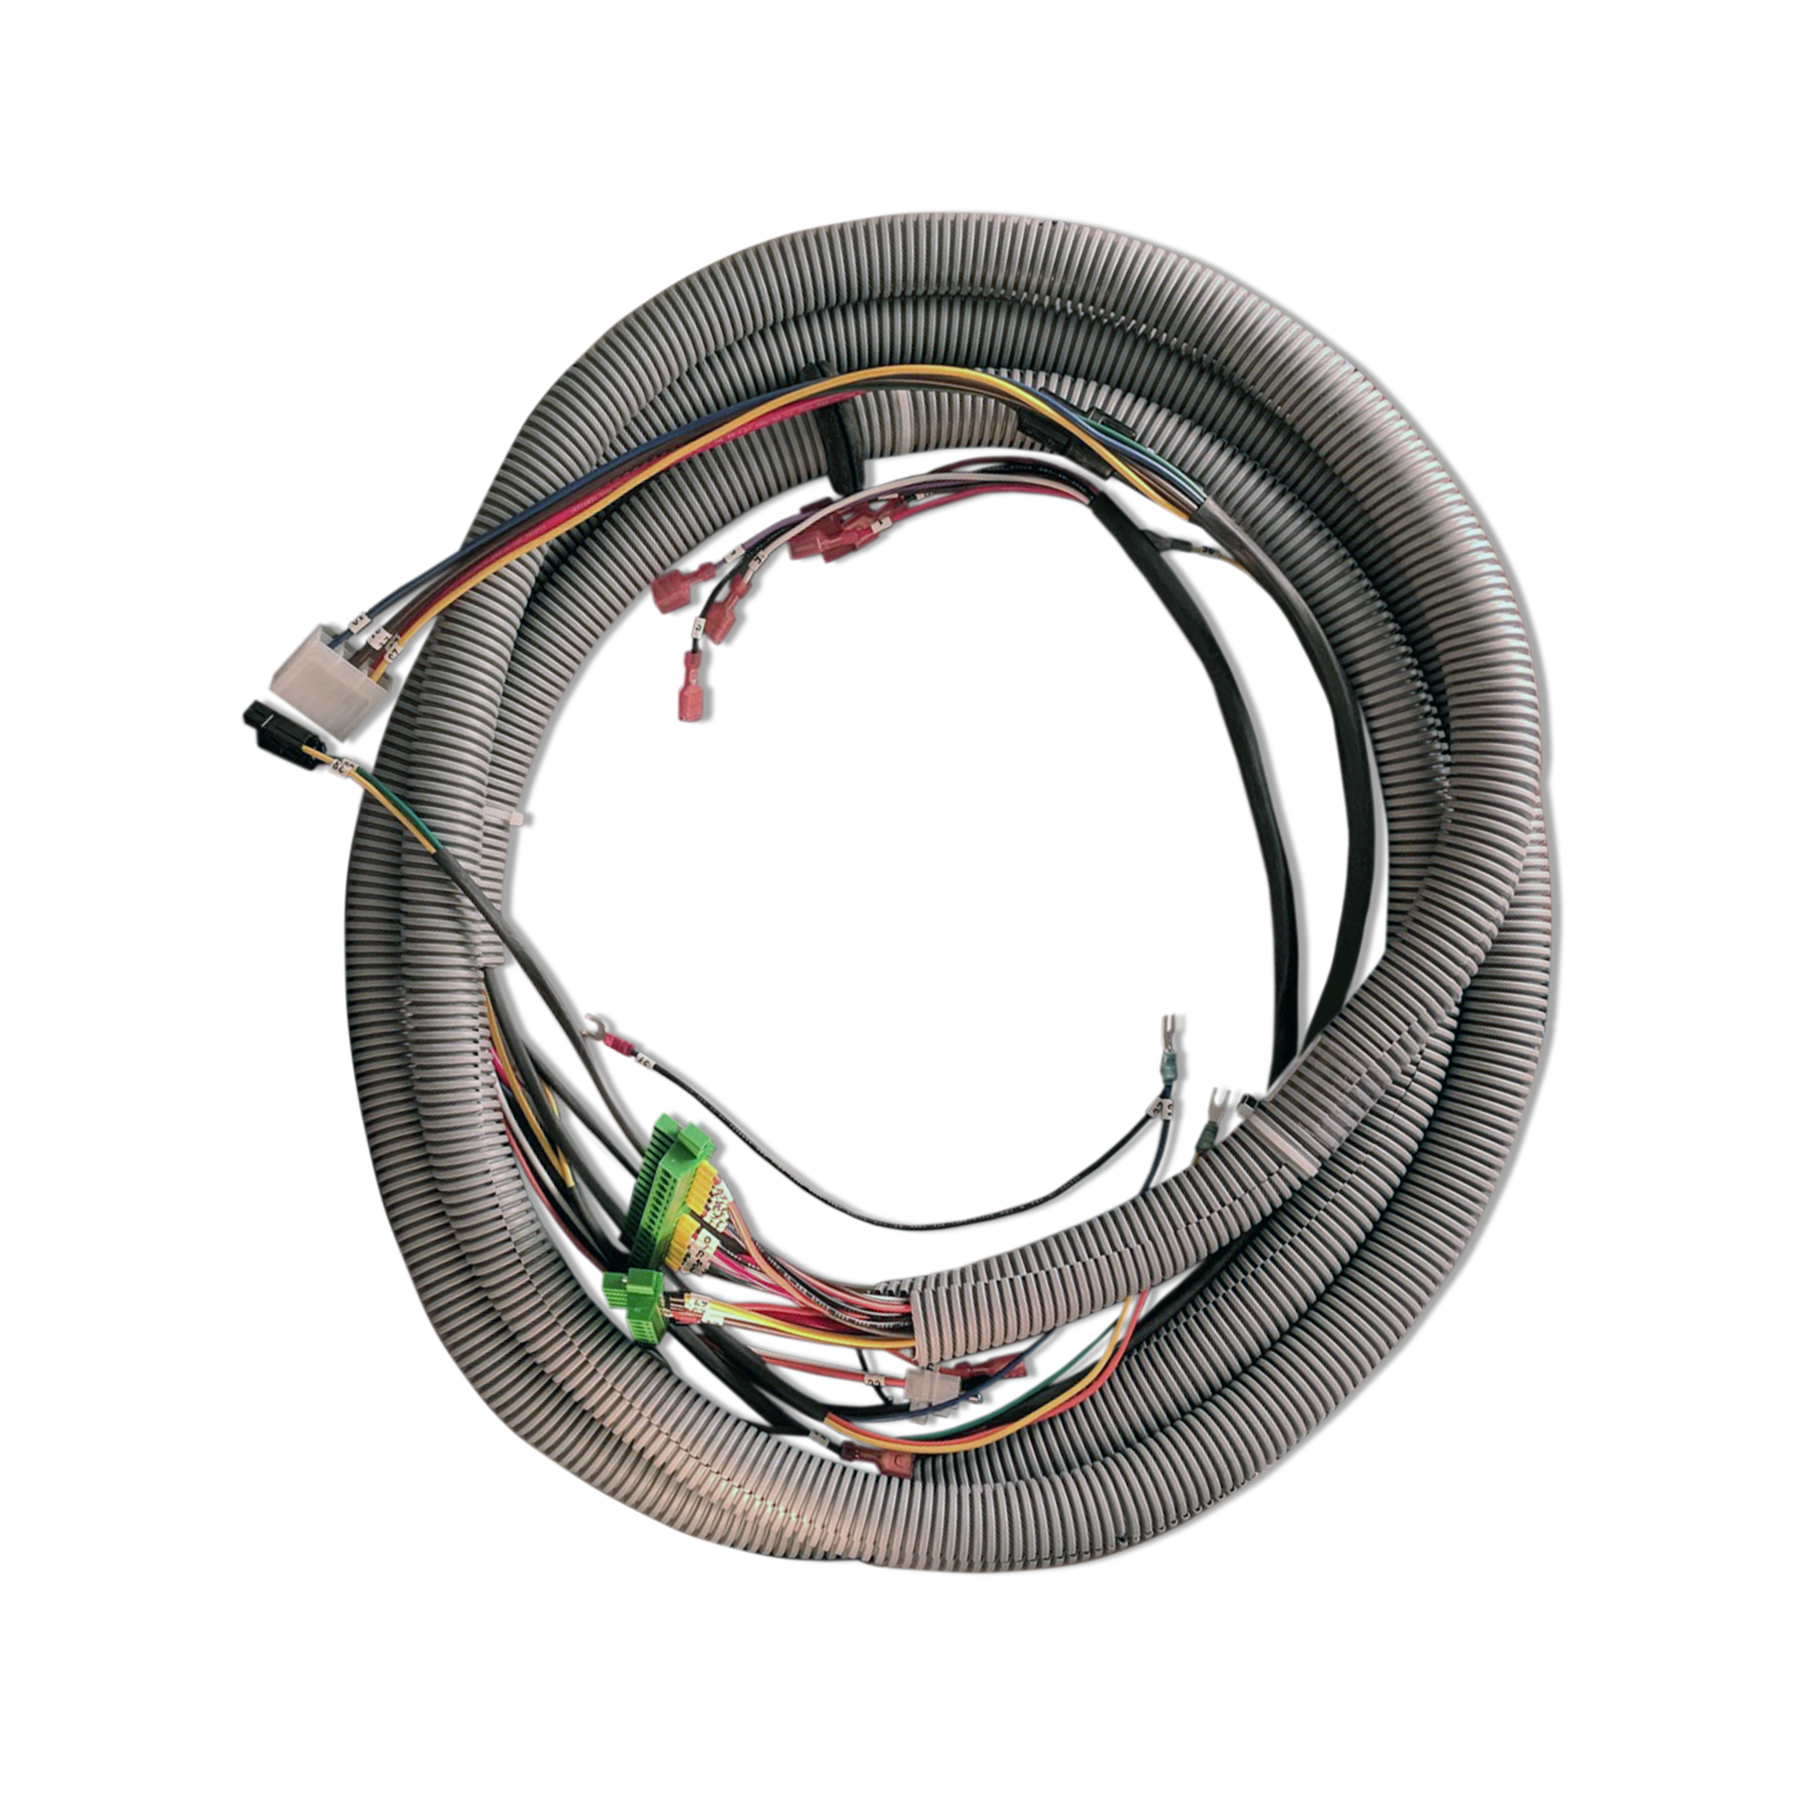 Circulation Pump and Burner Controller Wiring Harness, 12 ft.